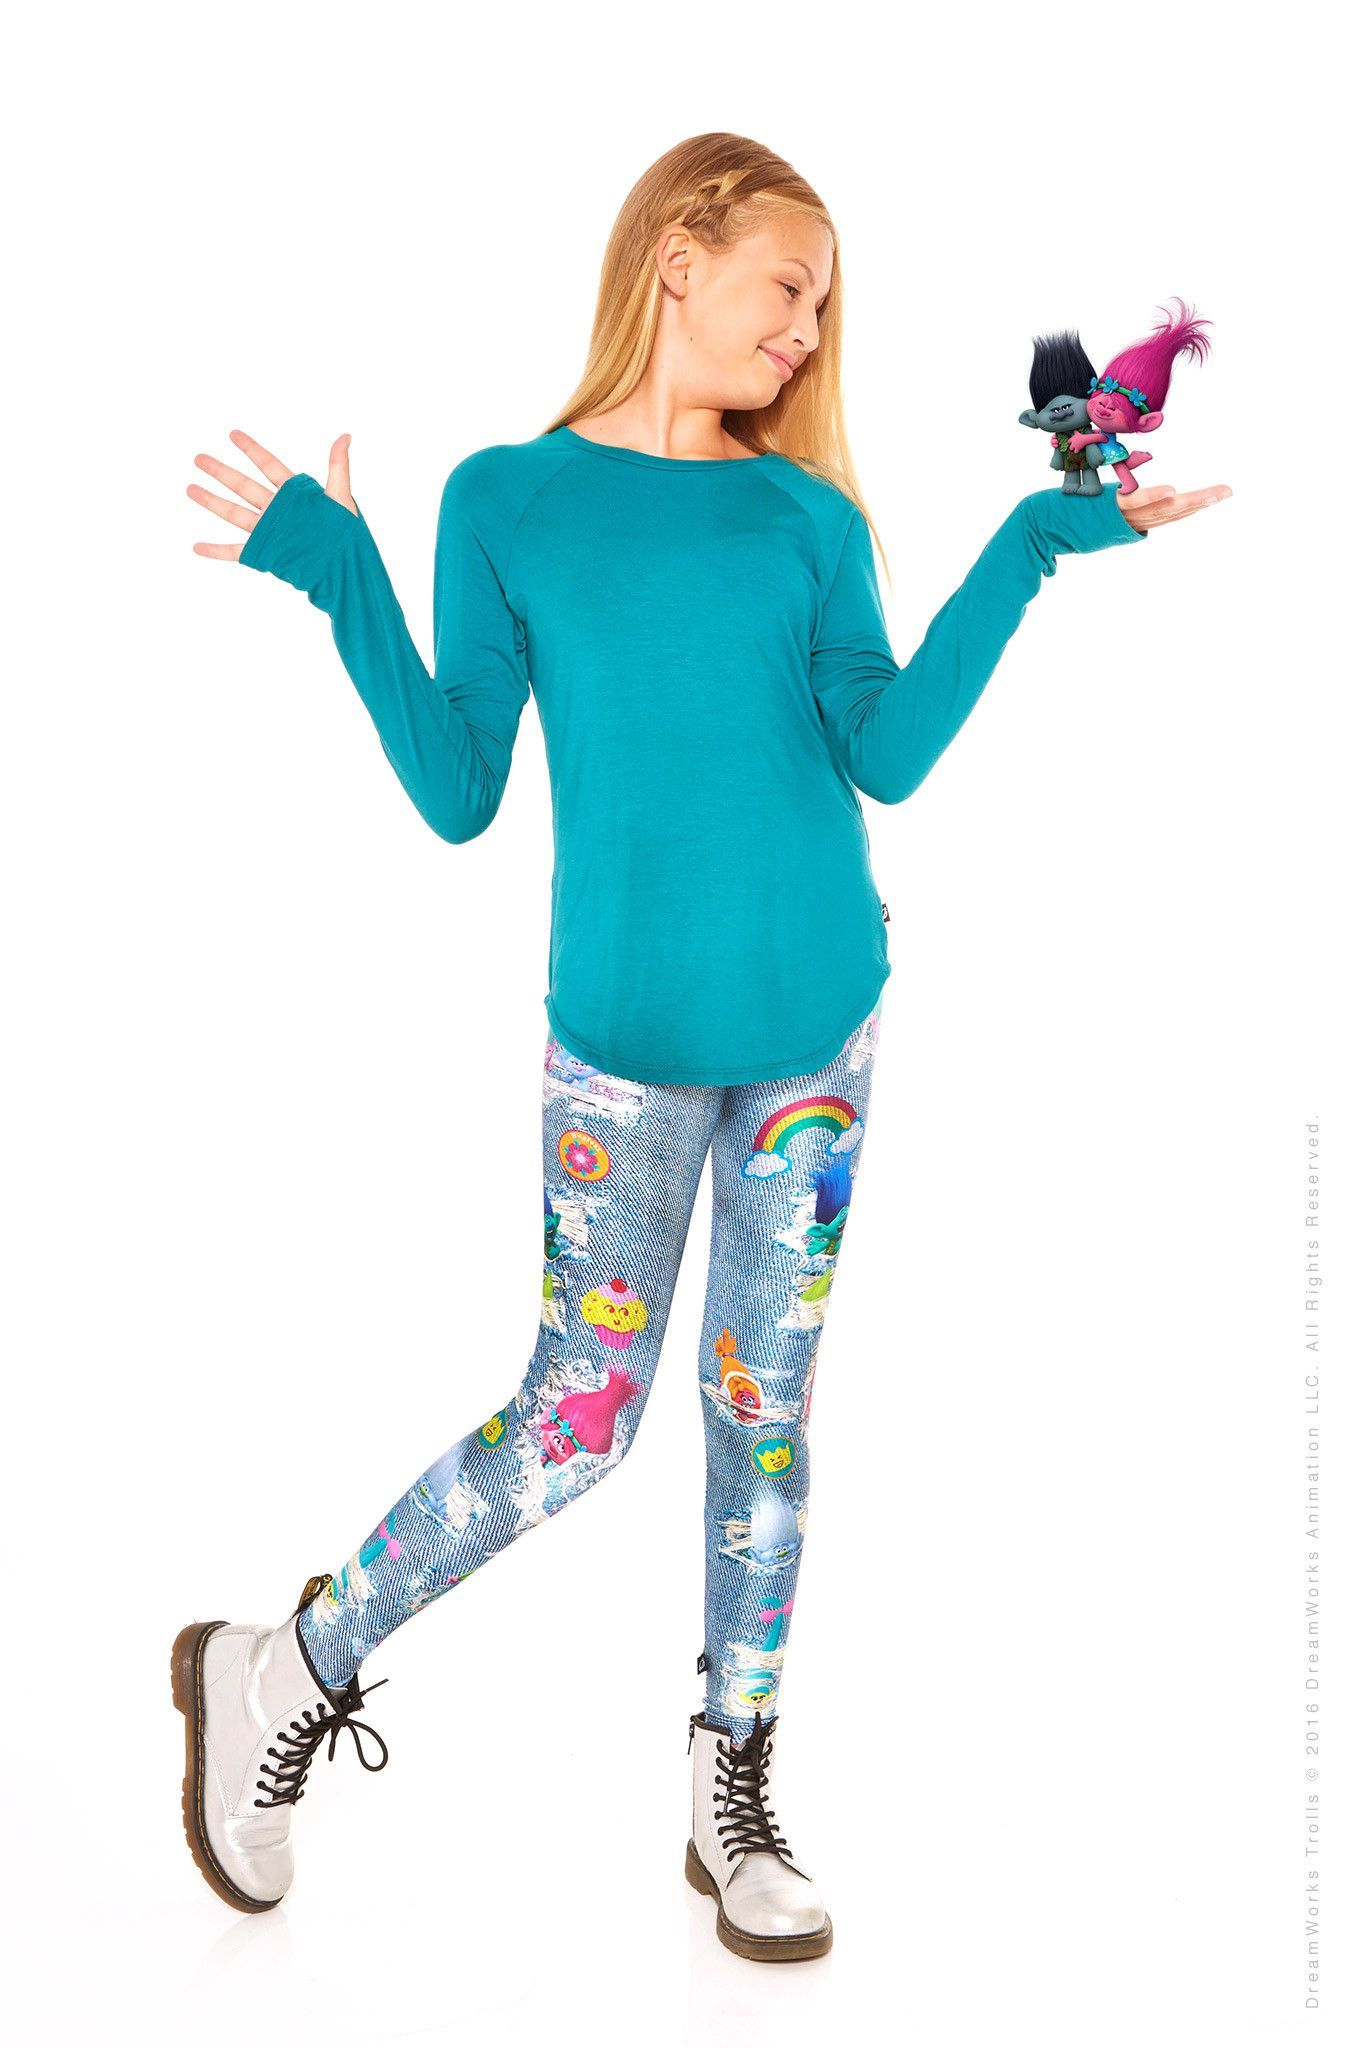 1d59f5ba1d62f We're heading on a wild adventure in these Trolls Denim Leggings! We  partnered with DreamWorks and their highly anticipated Trolls movie for one  of our ...